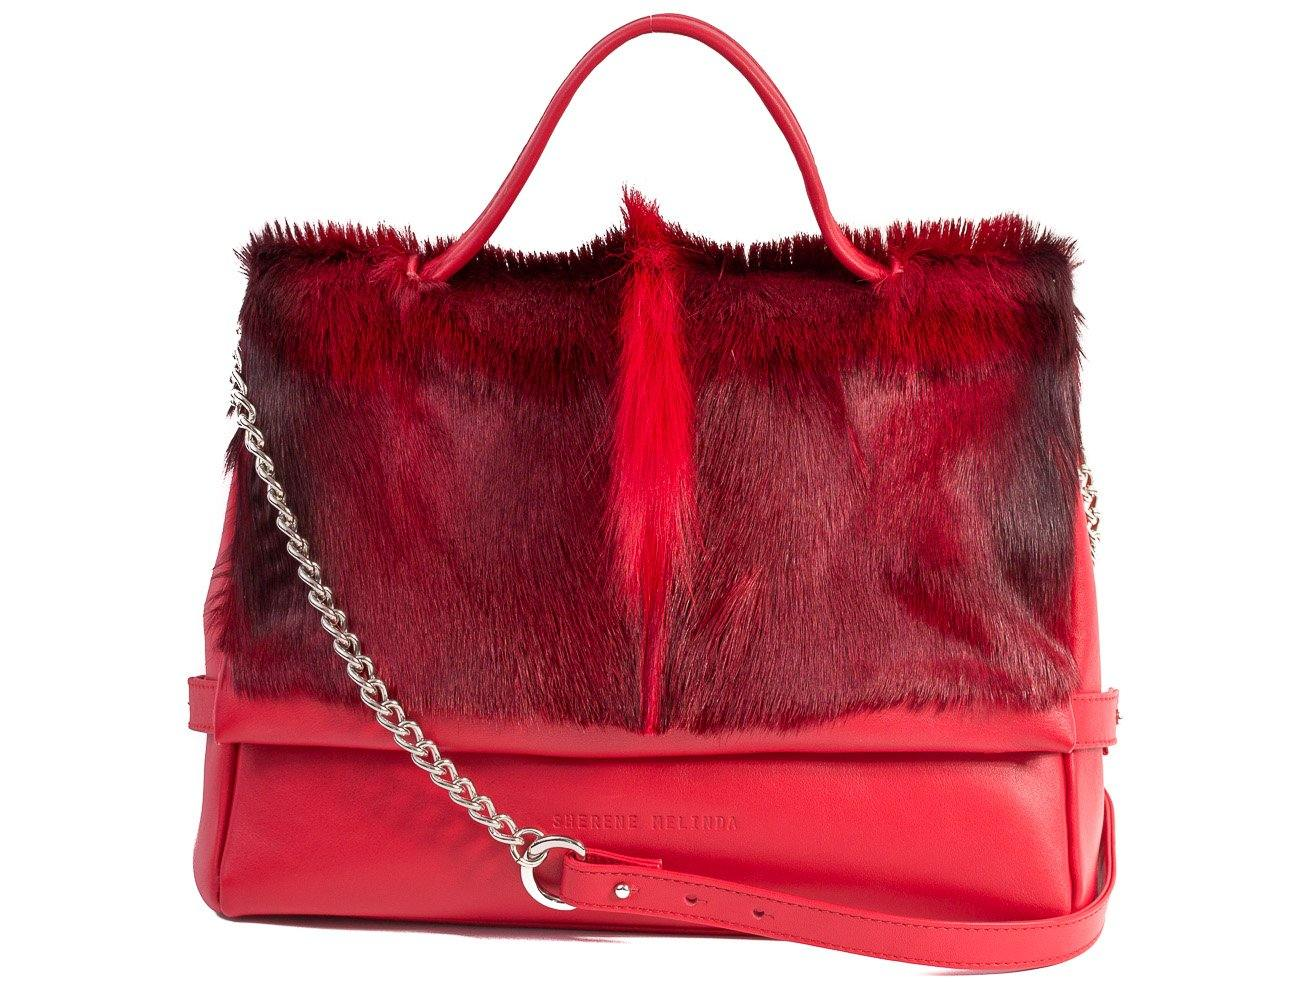 sherene melinda springbok hair-on-hide red leather smith tote bag fan front strap